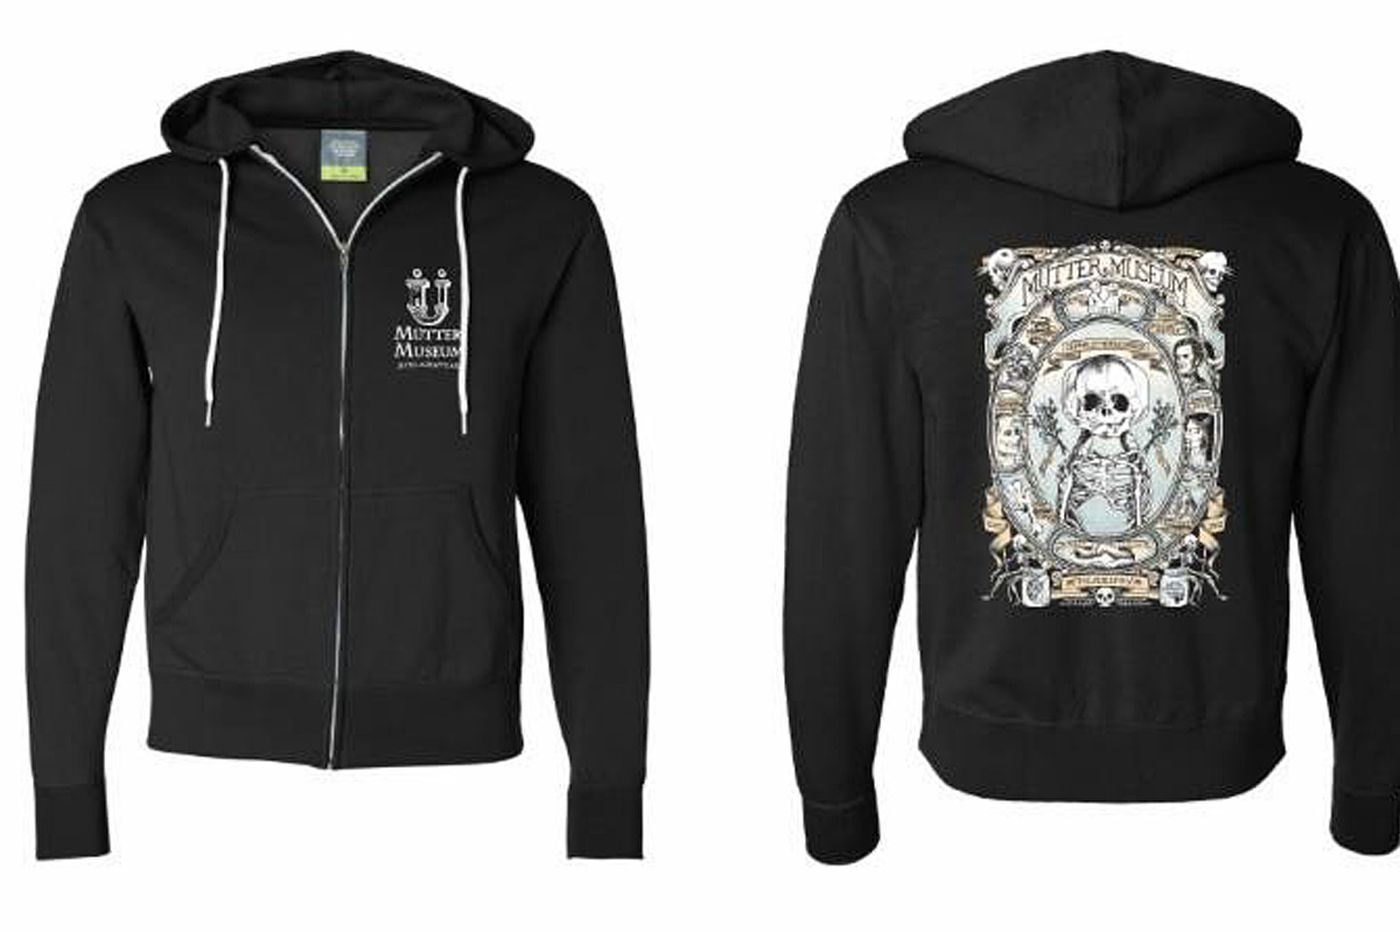 We're obsessed with this Mutter Museum hoodie